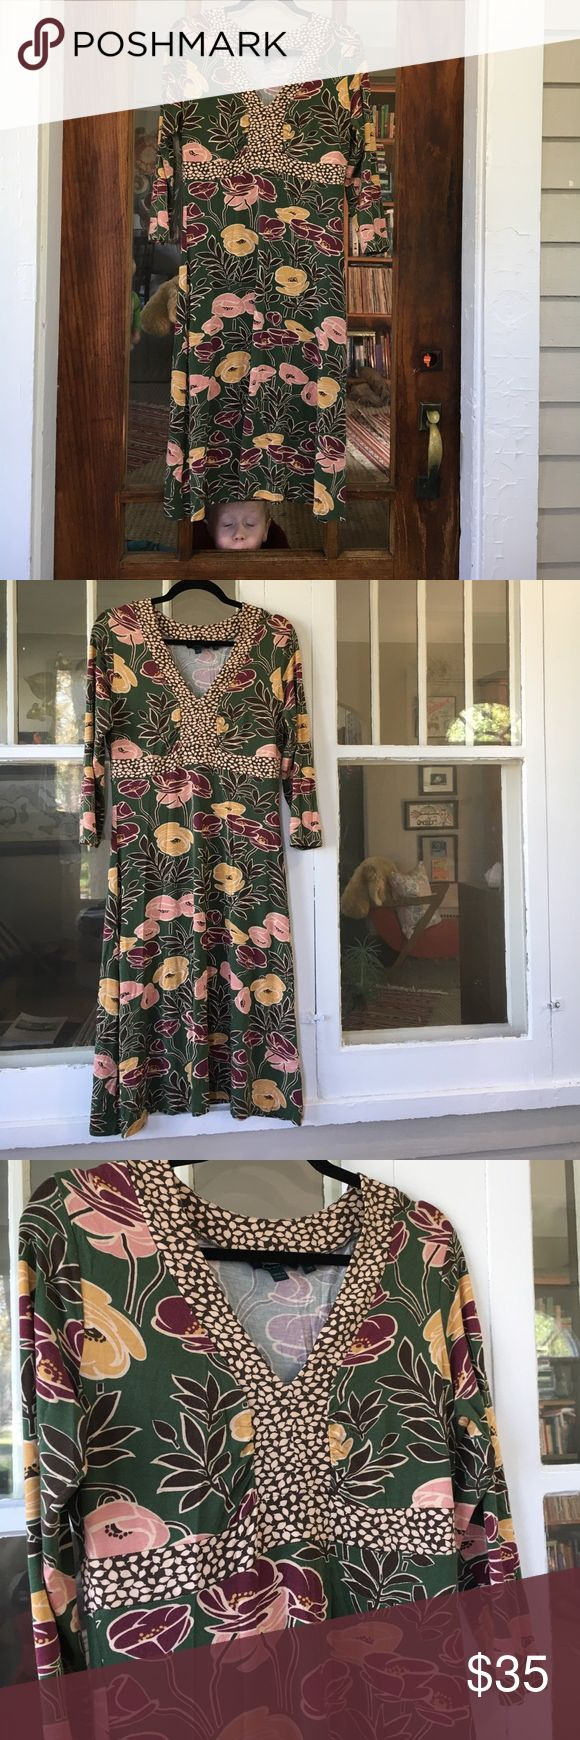 Boden jersey dress Saufley flowing knit dress. Perfect colors for fall green, maroon, gold, pink, brown, cream. Three force links leave hits below the knee V-neck so lovely. Size 12 UK I love it's Lorali Gilmore vibe😆 Boden Dresses Long Sleeve